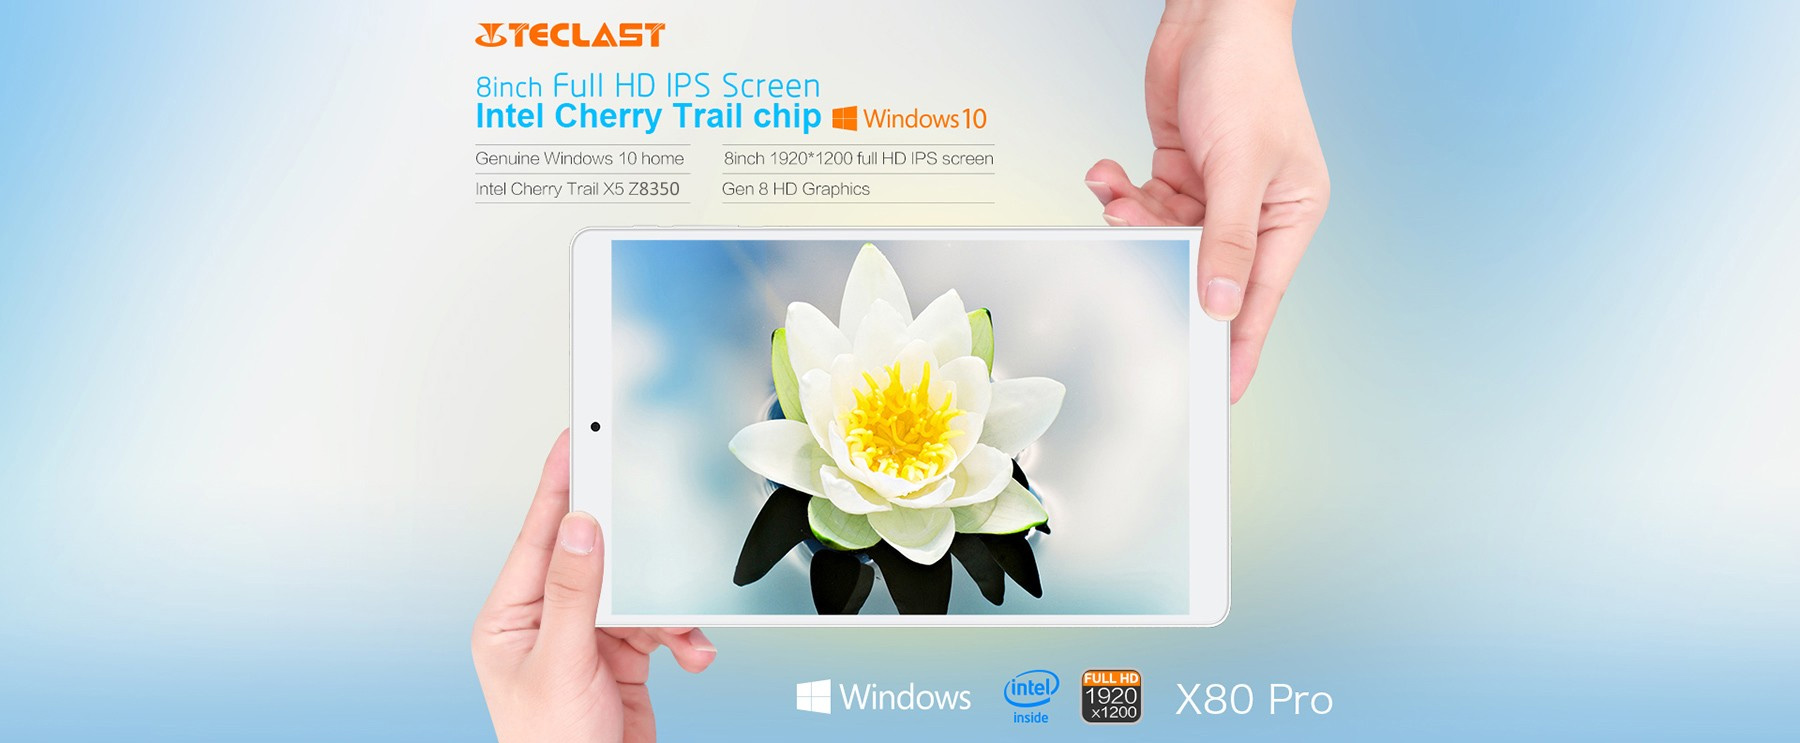 Teclast X80 Pro Tablet PC 8 inch IPS Screen Windows 10 + Android 5.1 Intel Cherry X5 Trail Z8350 Quad Core 1.44GHz 2GB RAM 32GB ROM WiFi Bluetooth 4.0 HDMI